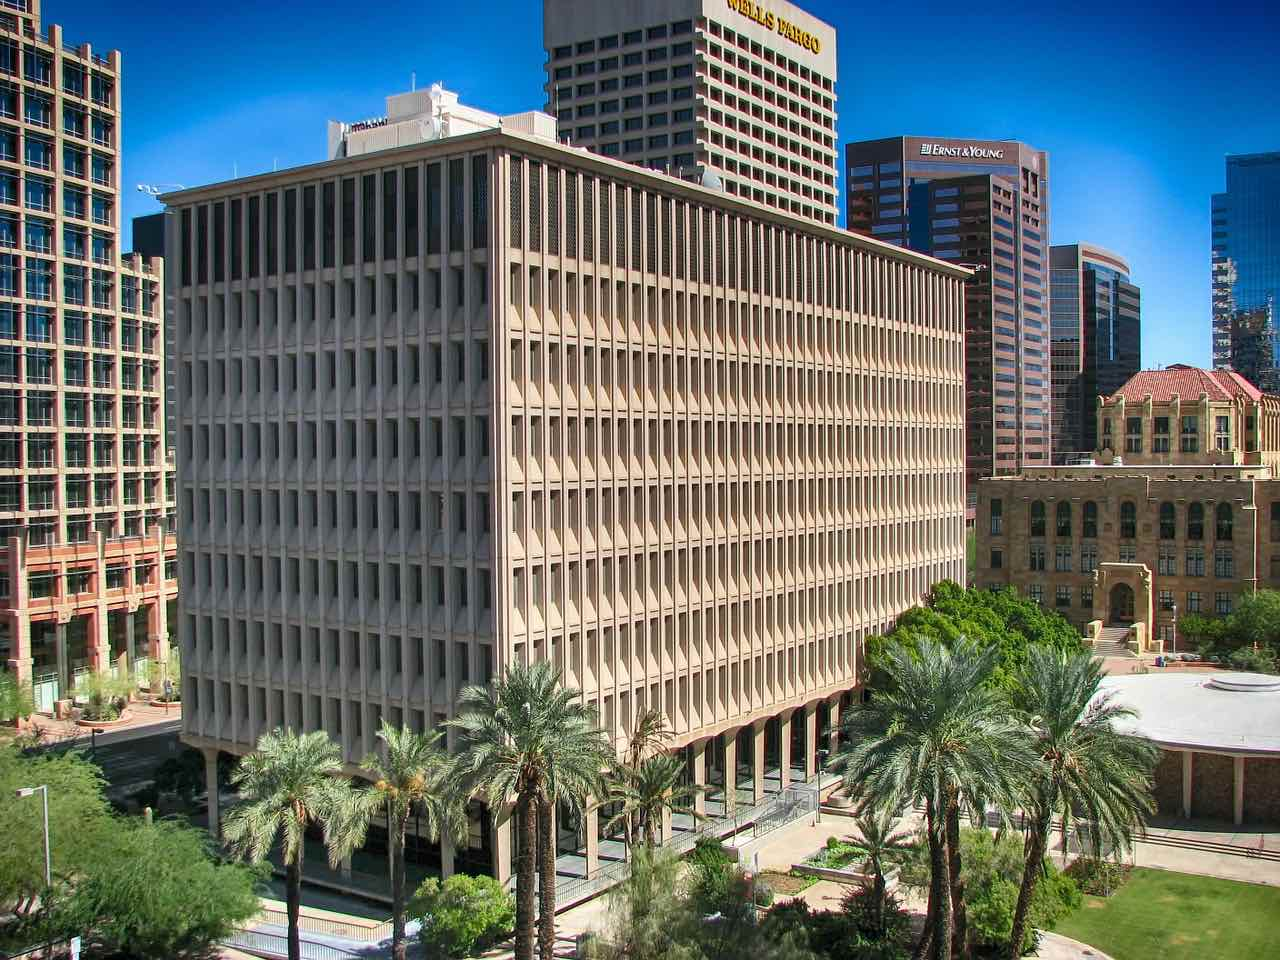 Edificio en Phoenix, Arizona